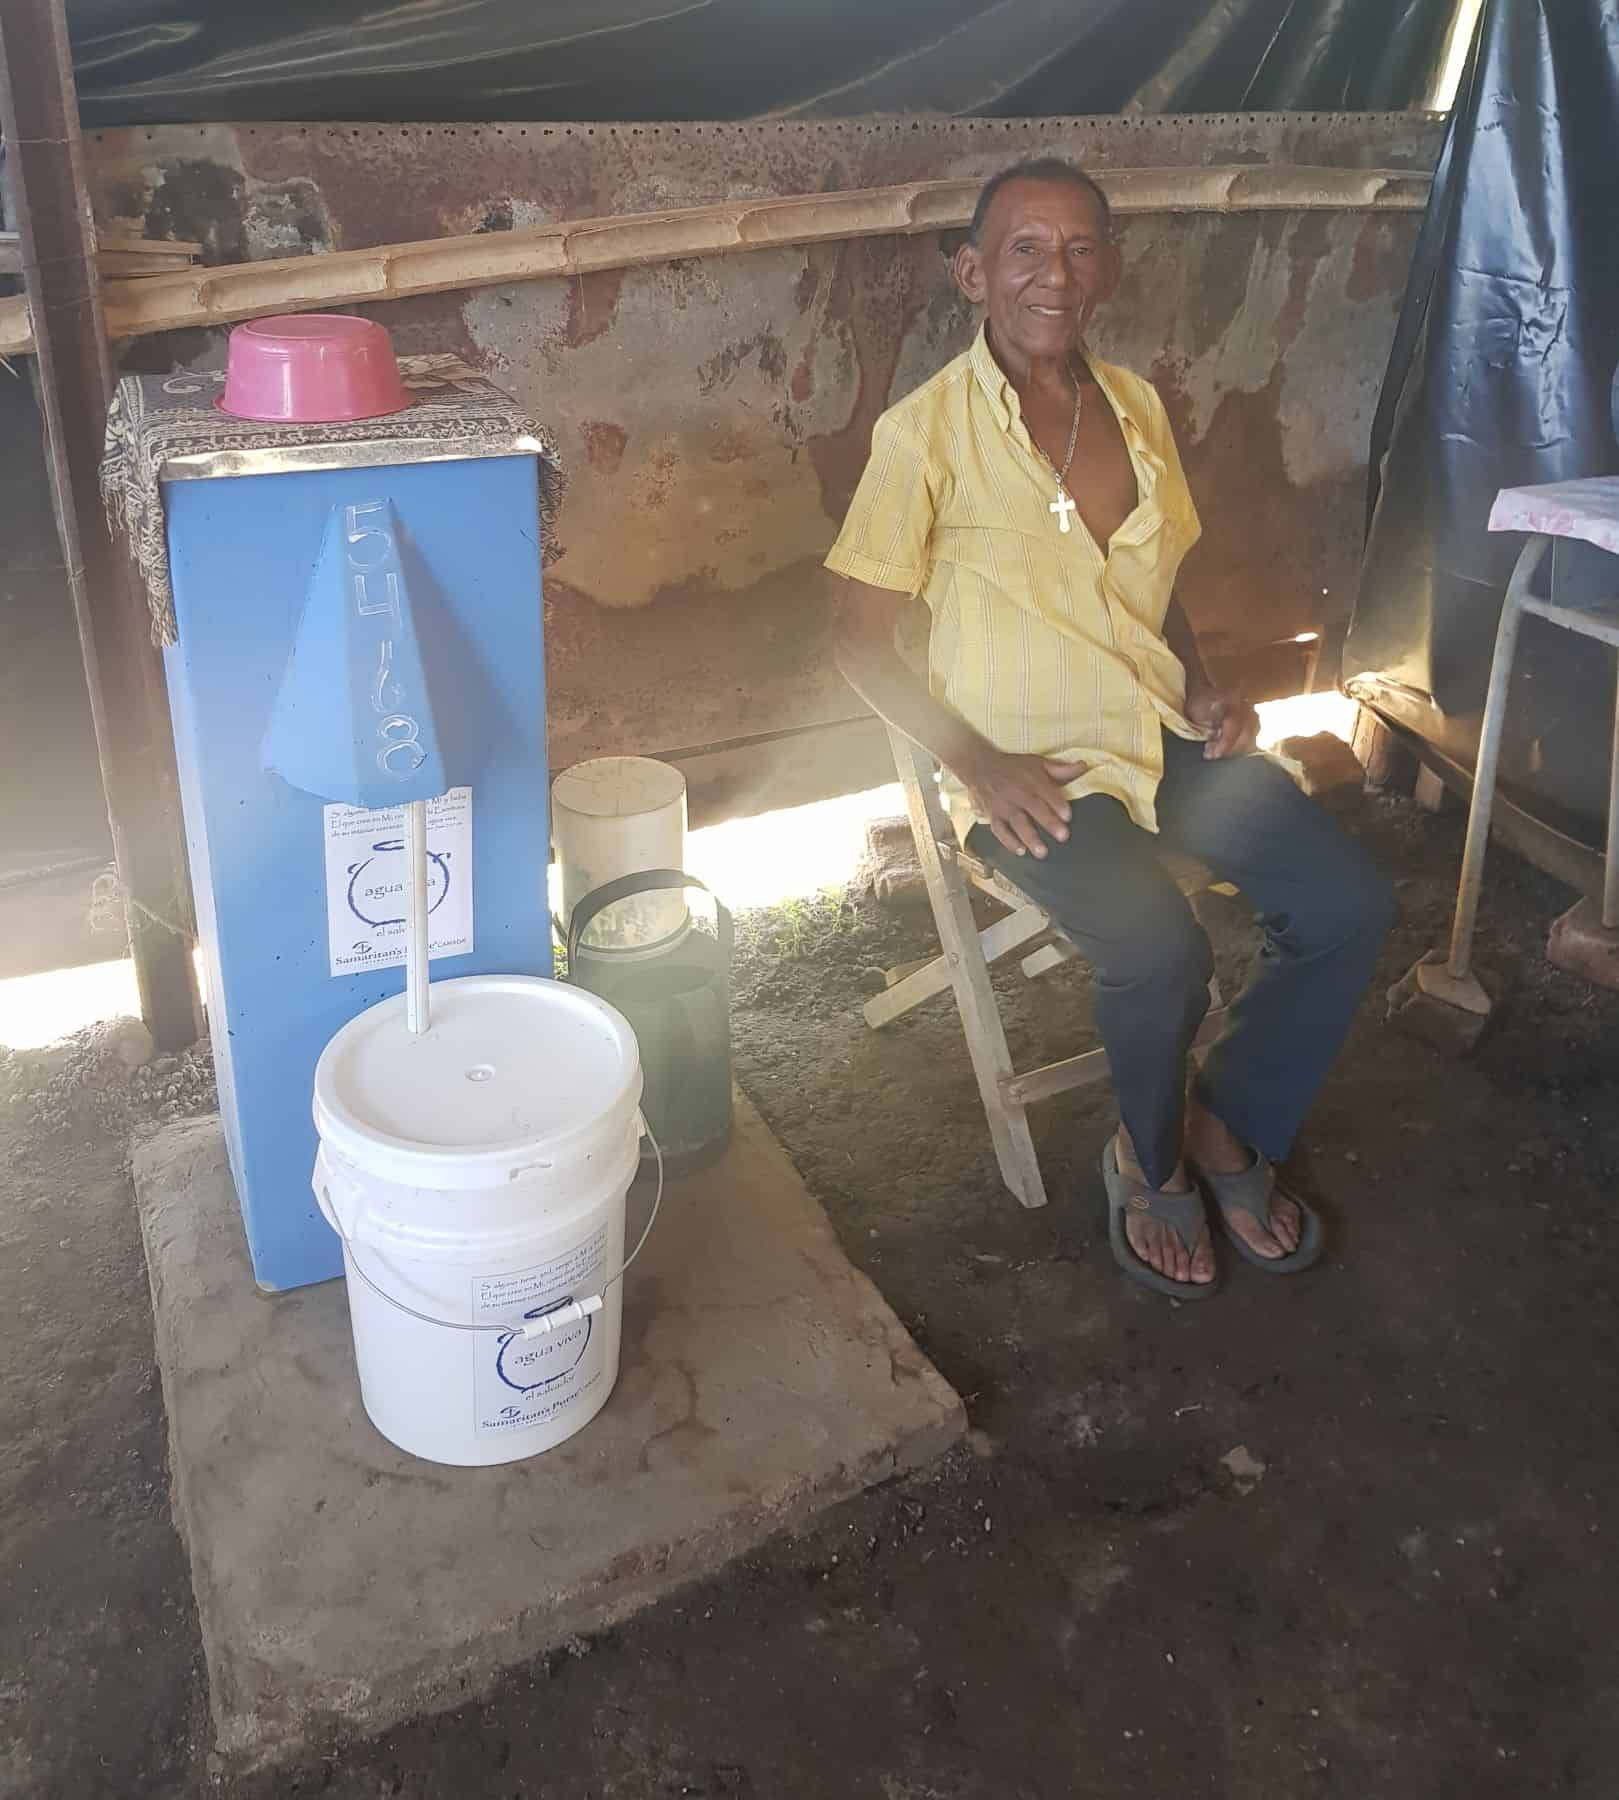 Seventy-eight-year-old Francisco Ayala used to suffer from painful and debilitating stomach ailments living alone in his small village in El Salvador. He now attributes his good health to the BioSand Water Filter.